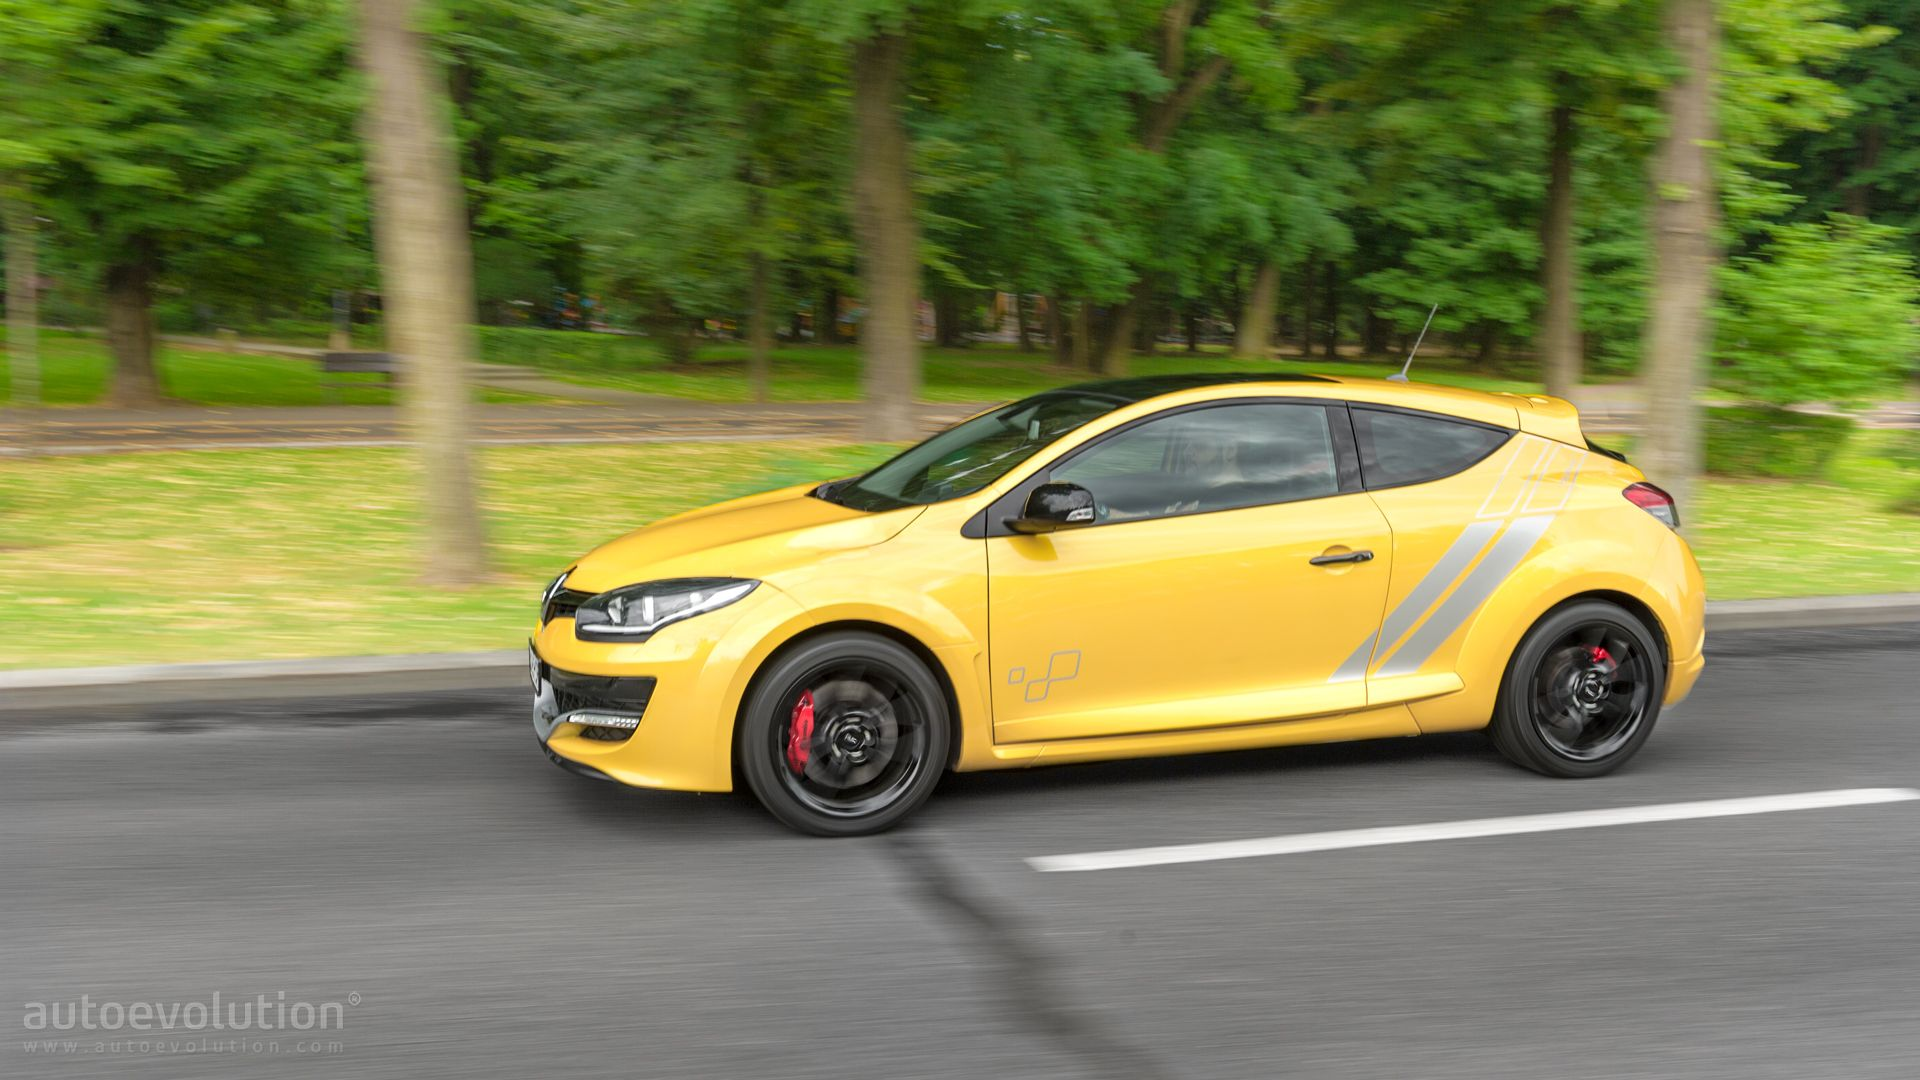 renault megane rs 275 trophy tested reminds us of the nissan gt r autoevolution. Black Bedroom Furniture Sets. Home Design Ideas